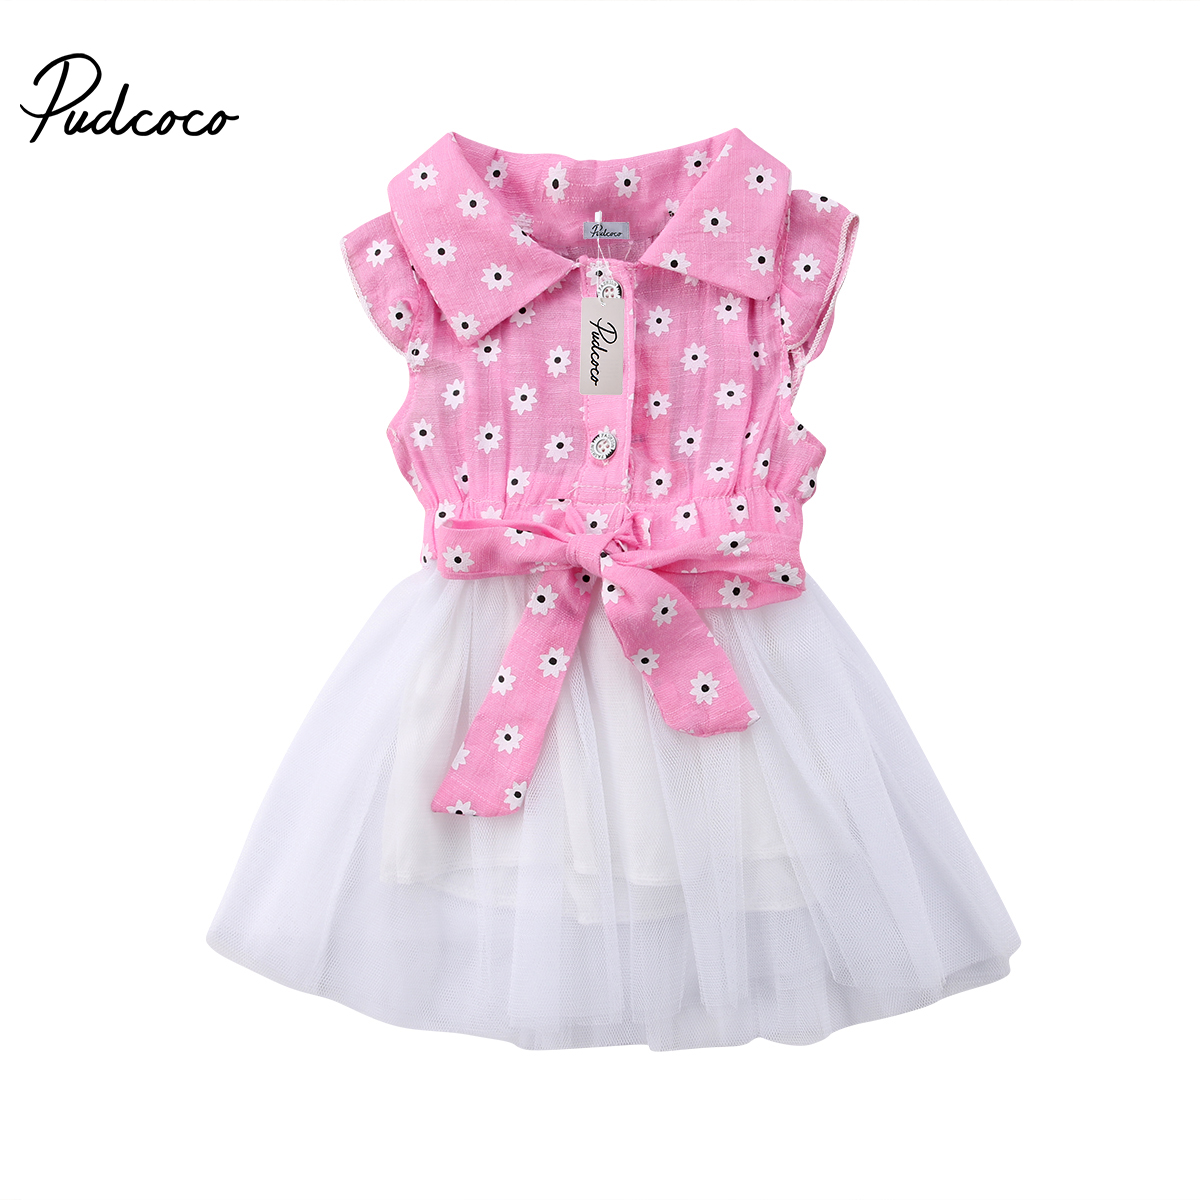 New Cute Girl Princess Dress Newborn Kids Baby Girls Floral Bowknot Lace Tulle Dress Infant Summer Party Mini Dress ems dhl free 2018 new lace tulle baby girls kids sleeveless party dress holiday children summer style baby dress valentine